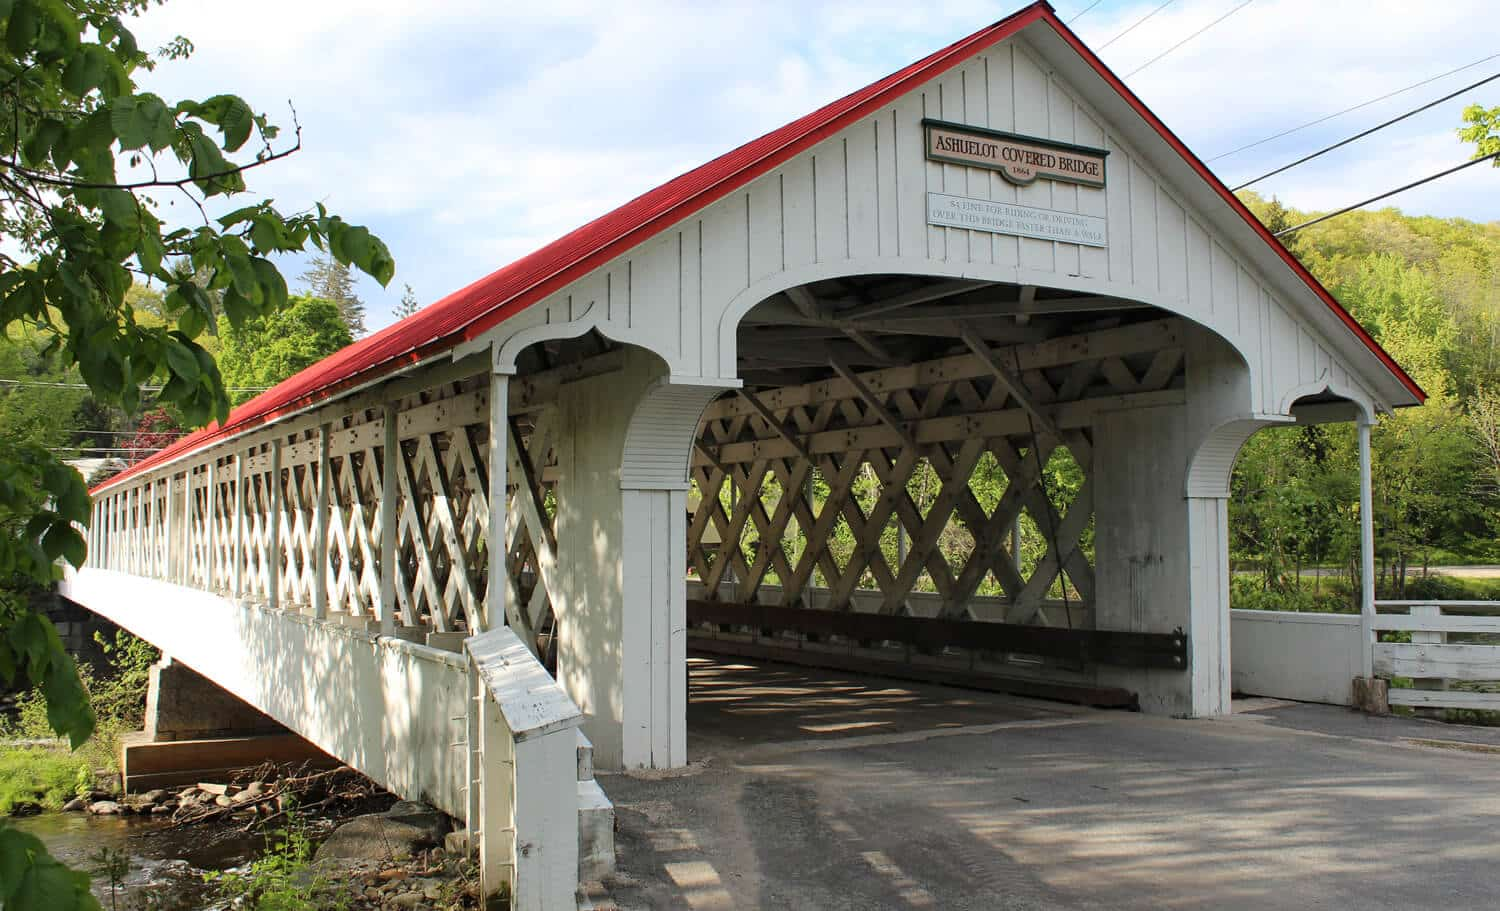 A white and red covered bridge connects the road over a river